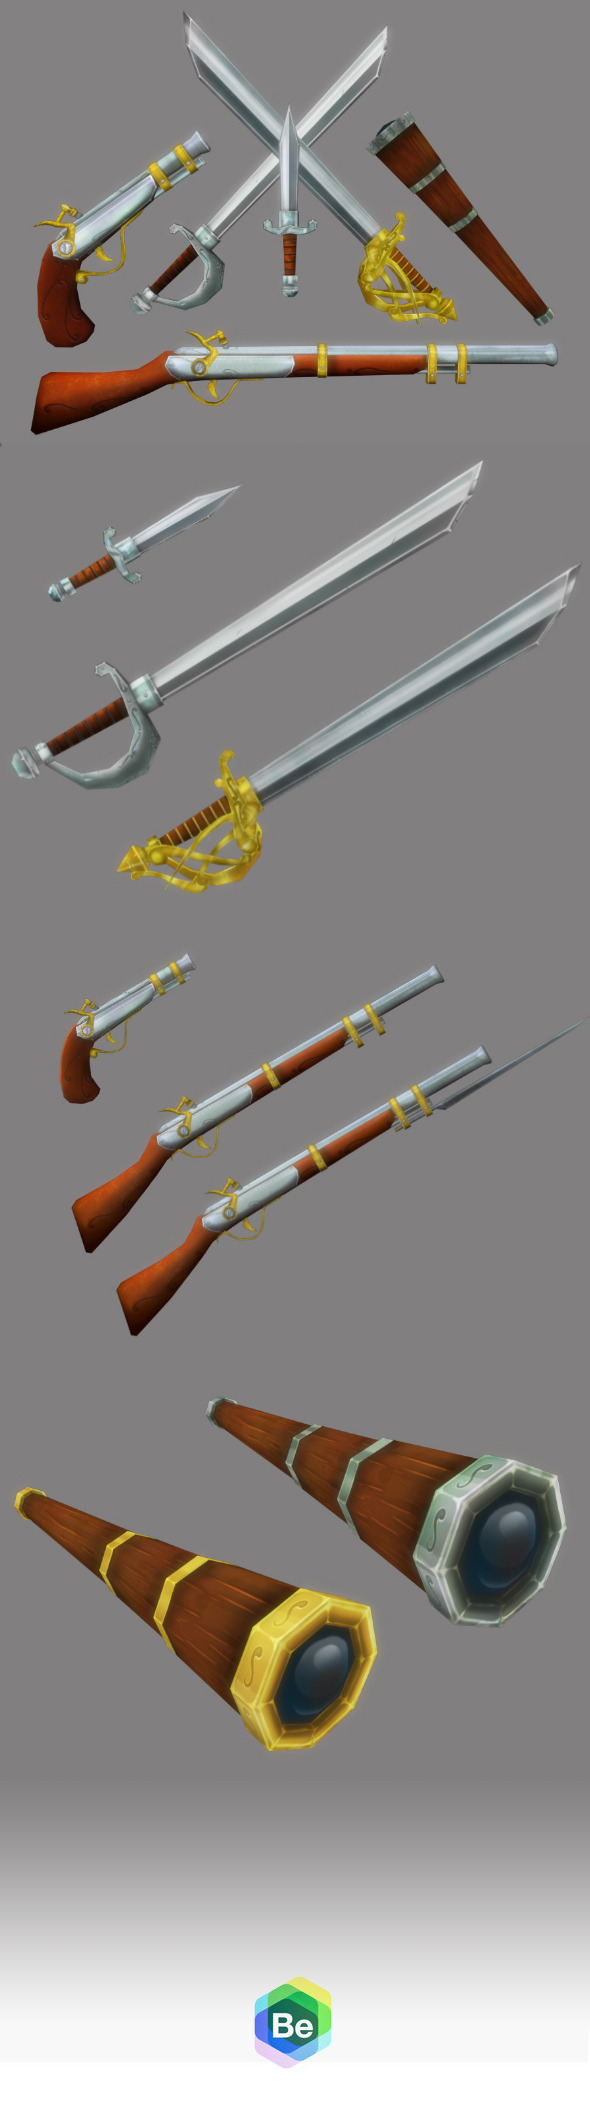 3DOcean Low Poly Cartoonish Pirate Weapons Kit 5972363